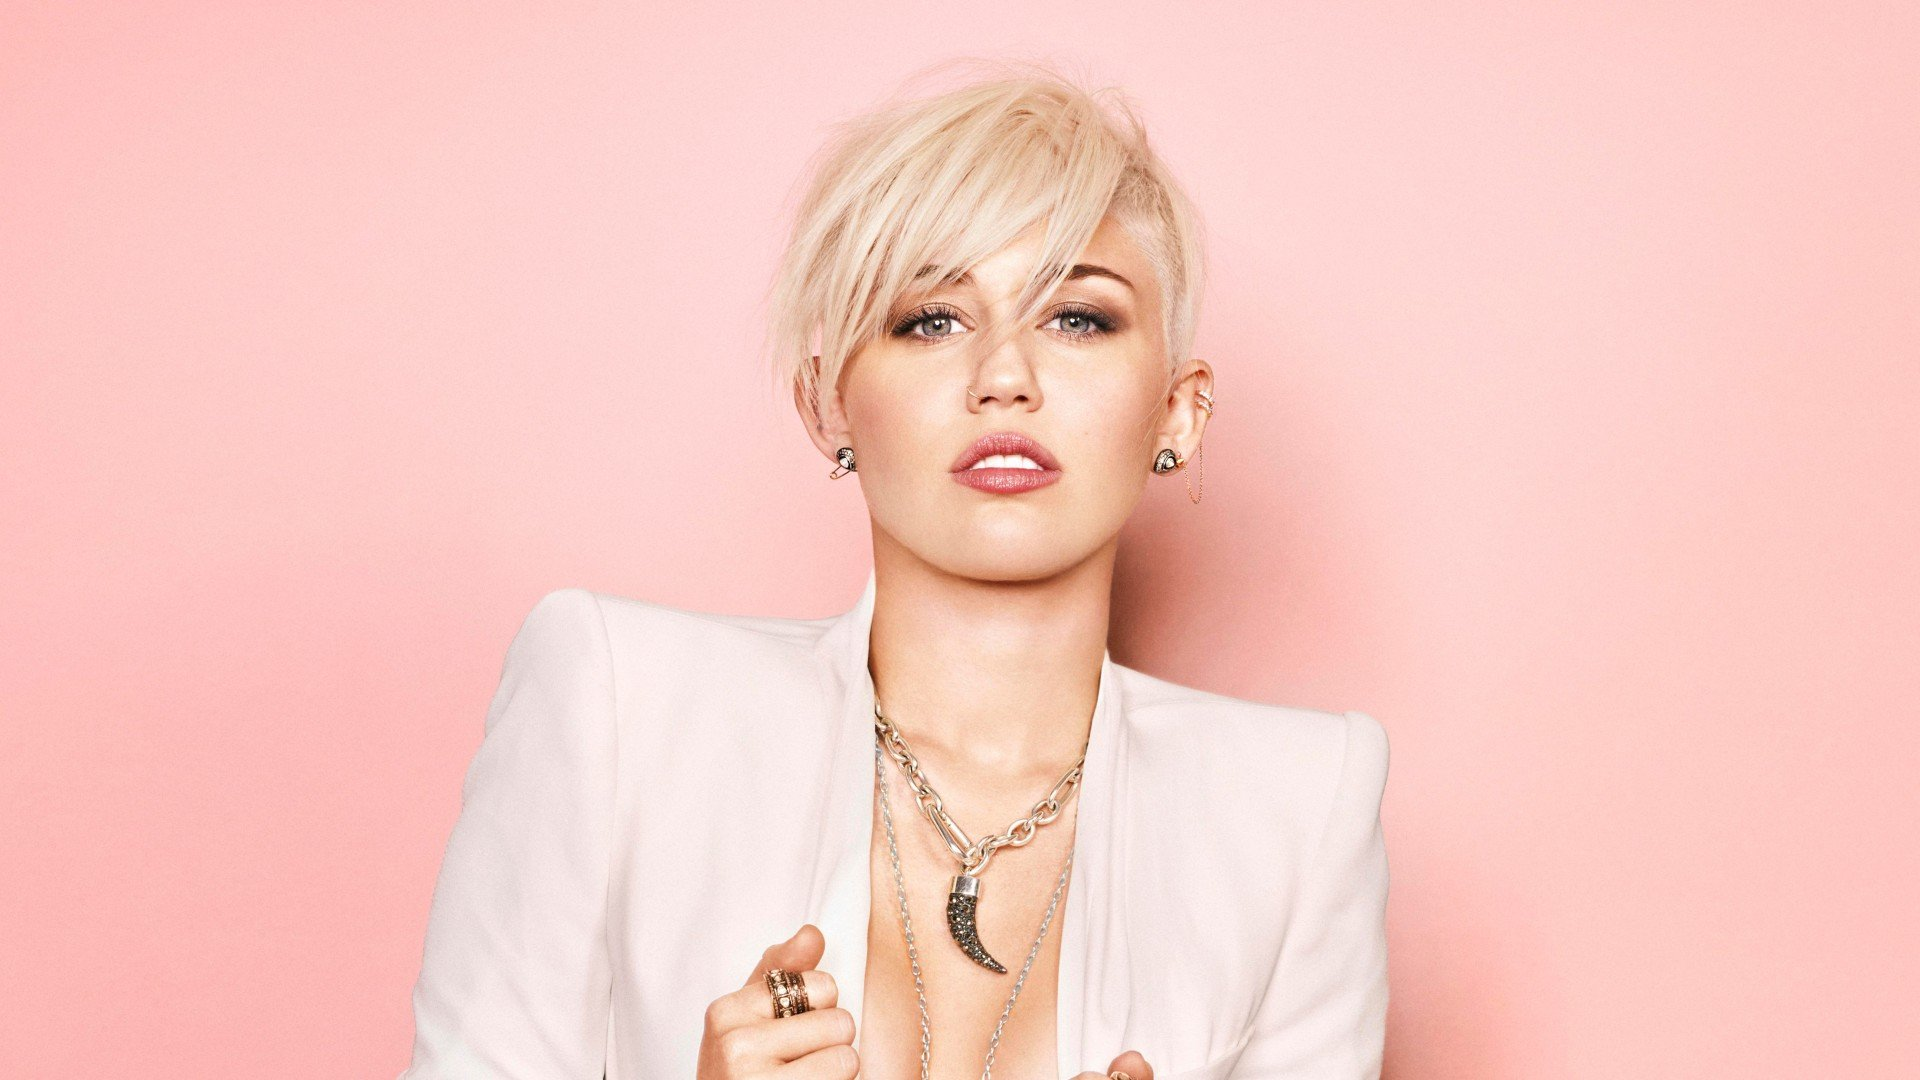 Miley Cyrus New Photoshoot Wallpaper HD-1920x1080